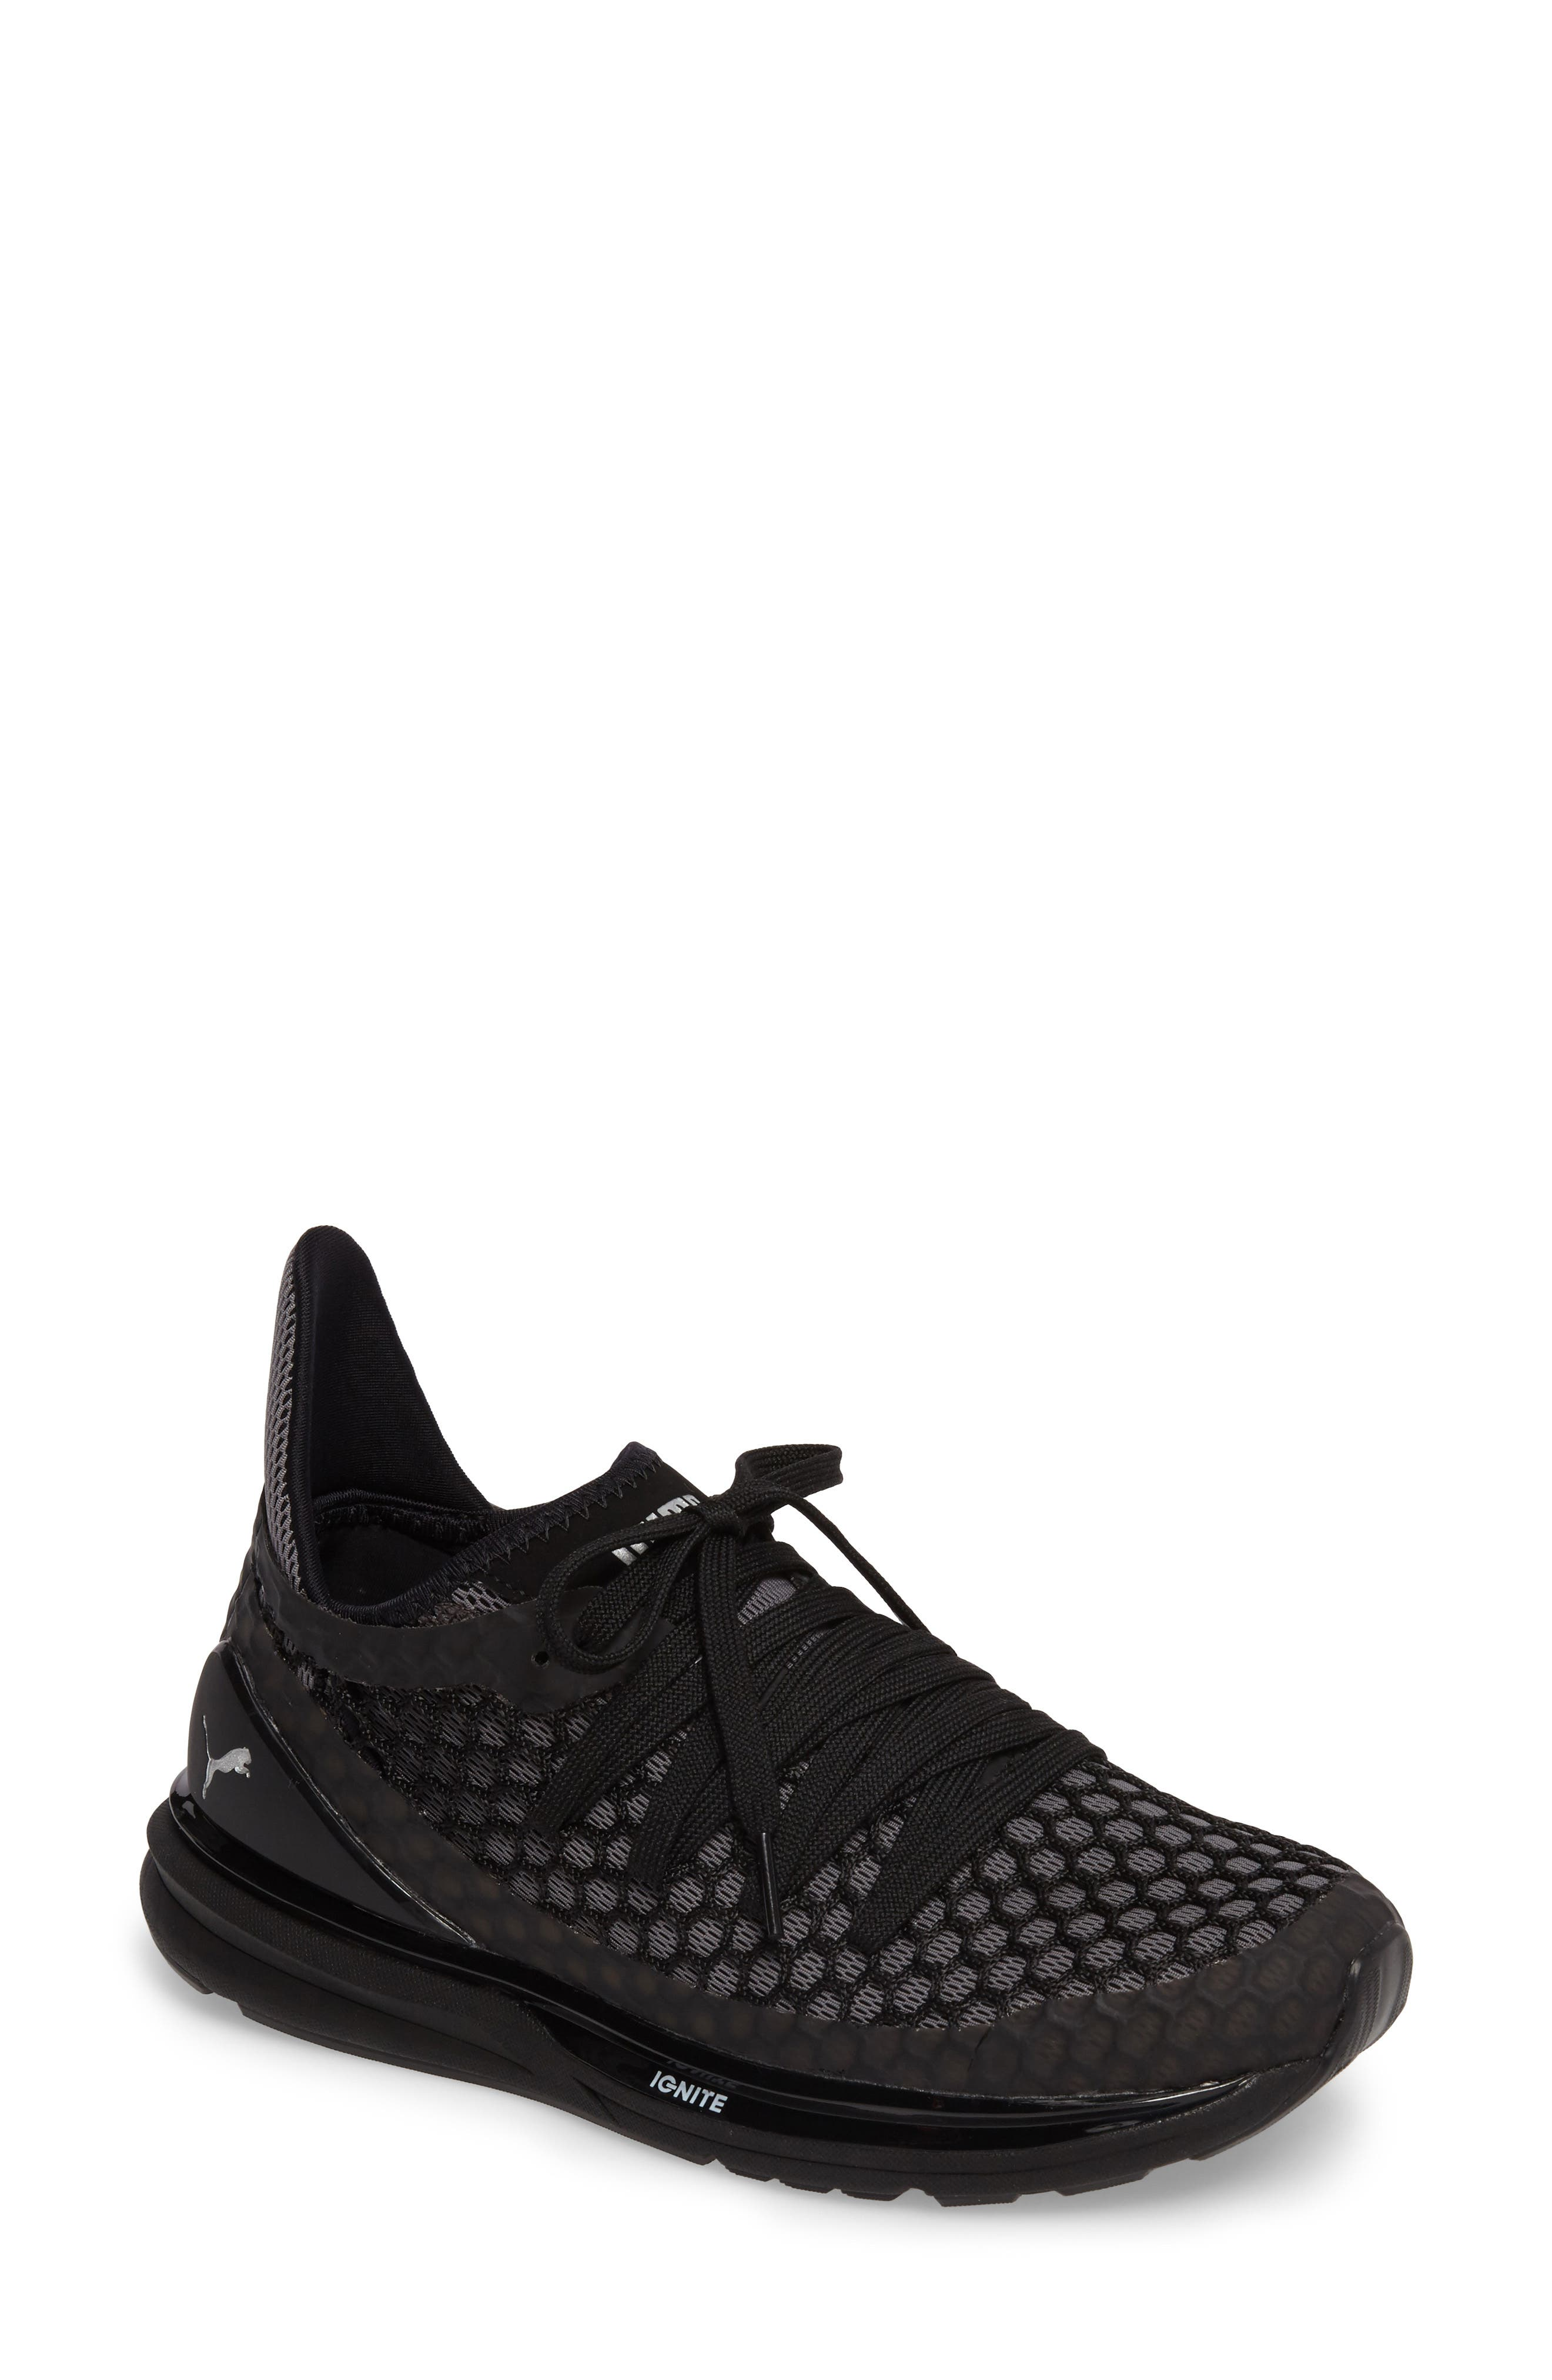 PUMA,                             Ignite Limitless Netfit Running Shoe,                             Main thumbnail 1, color,                             001